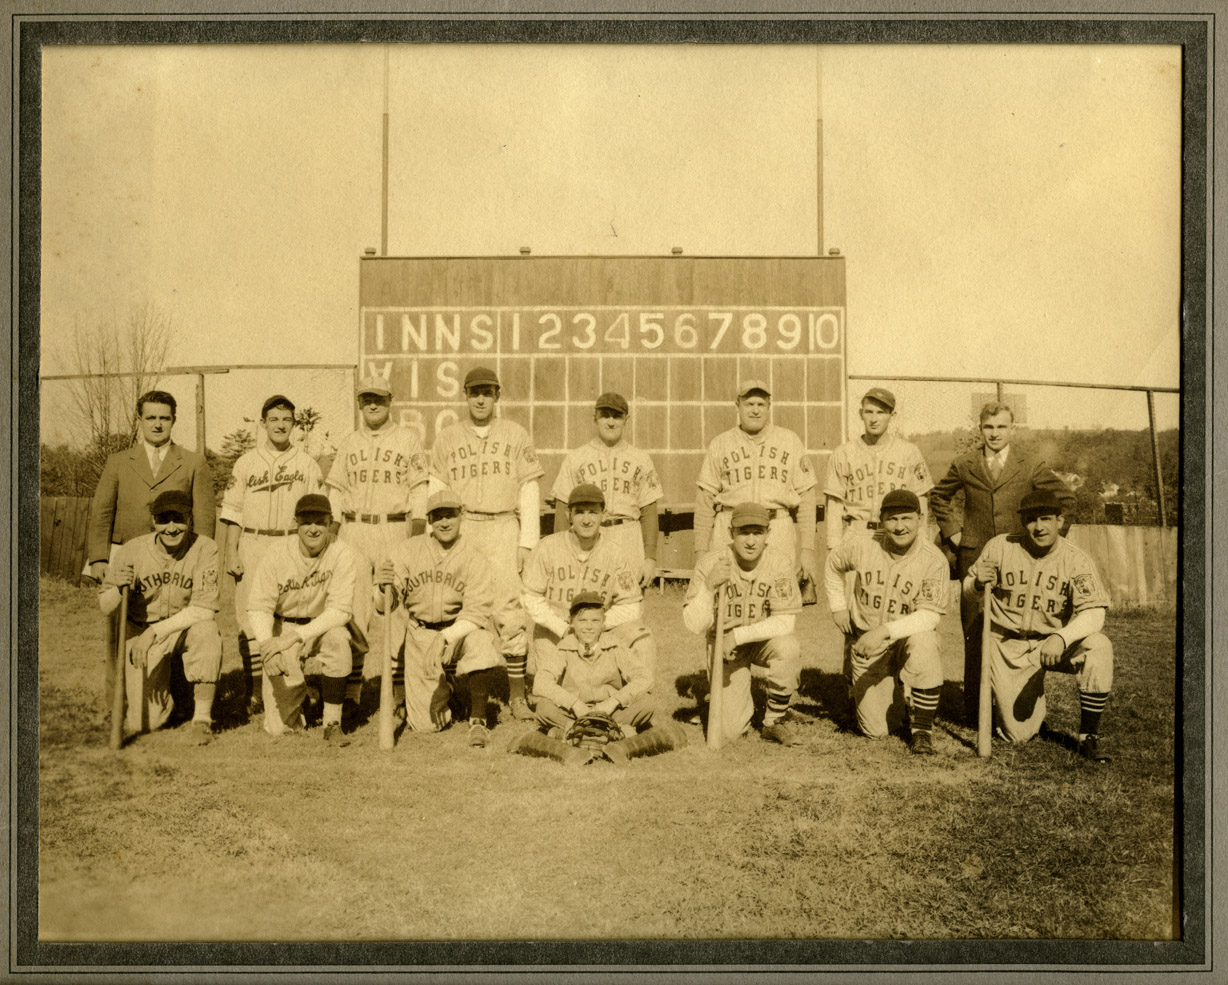 Depiction of Polish Tigers baseball team, ca.1935